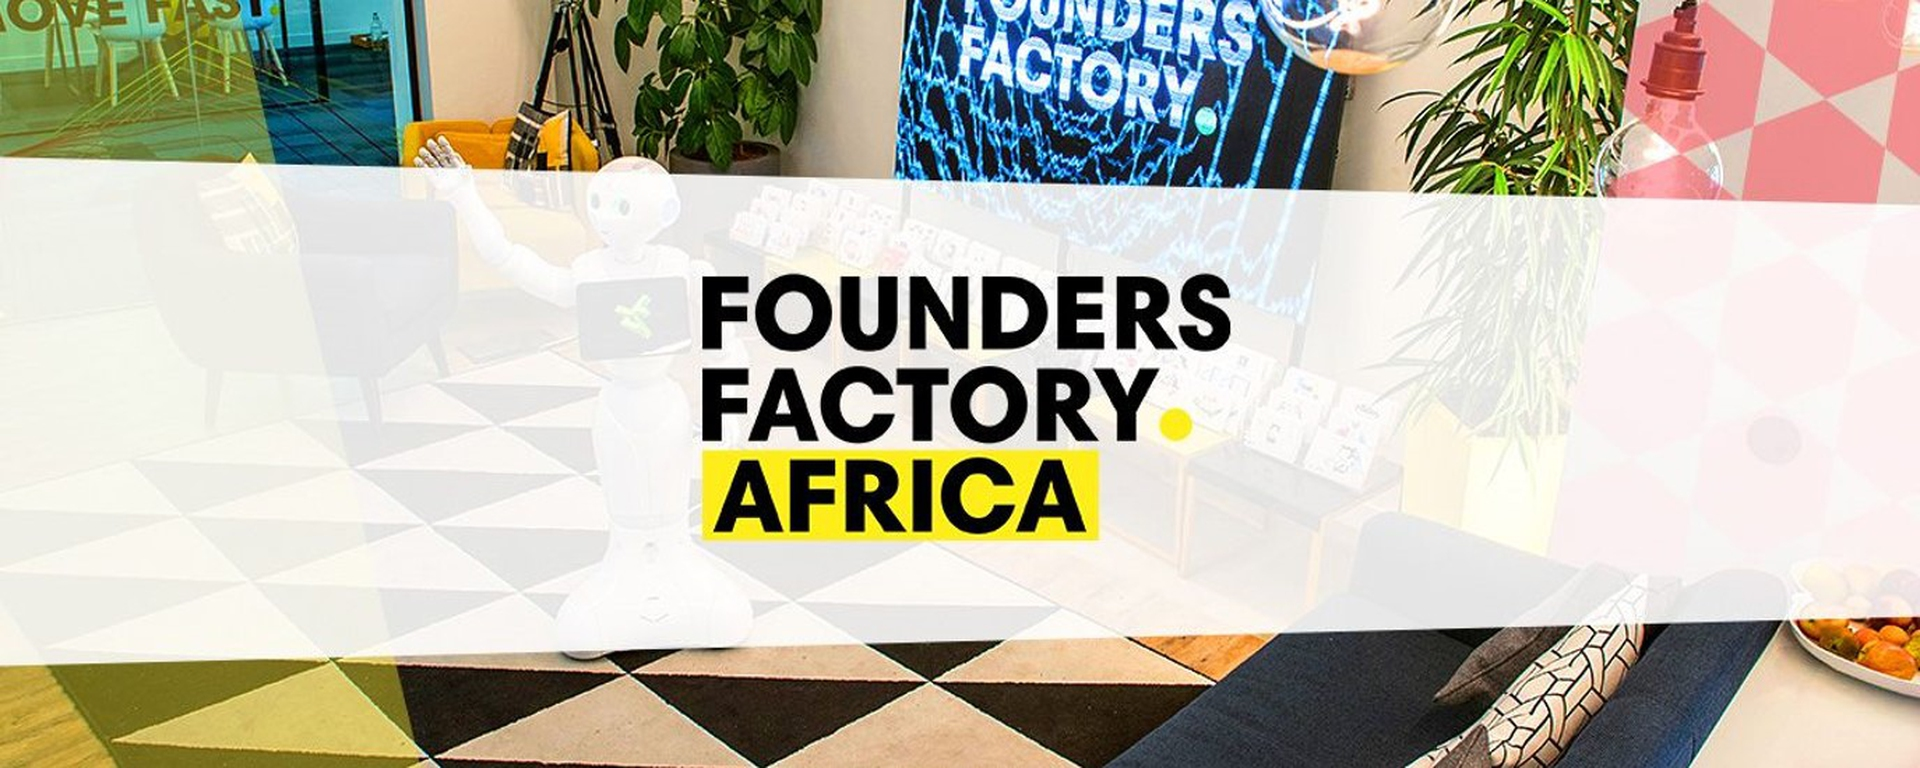 Founders Factory Africa - Build Program Movemeback African opportunity cover image